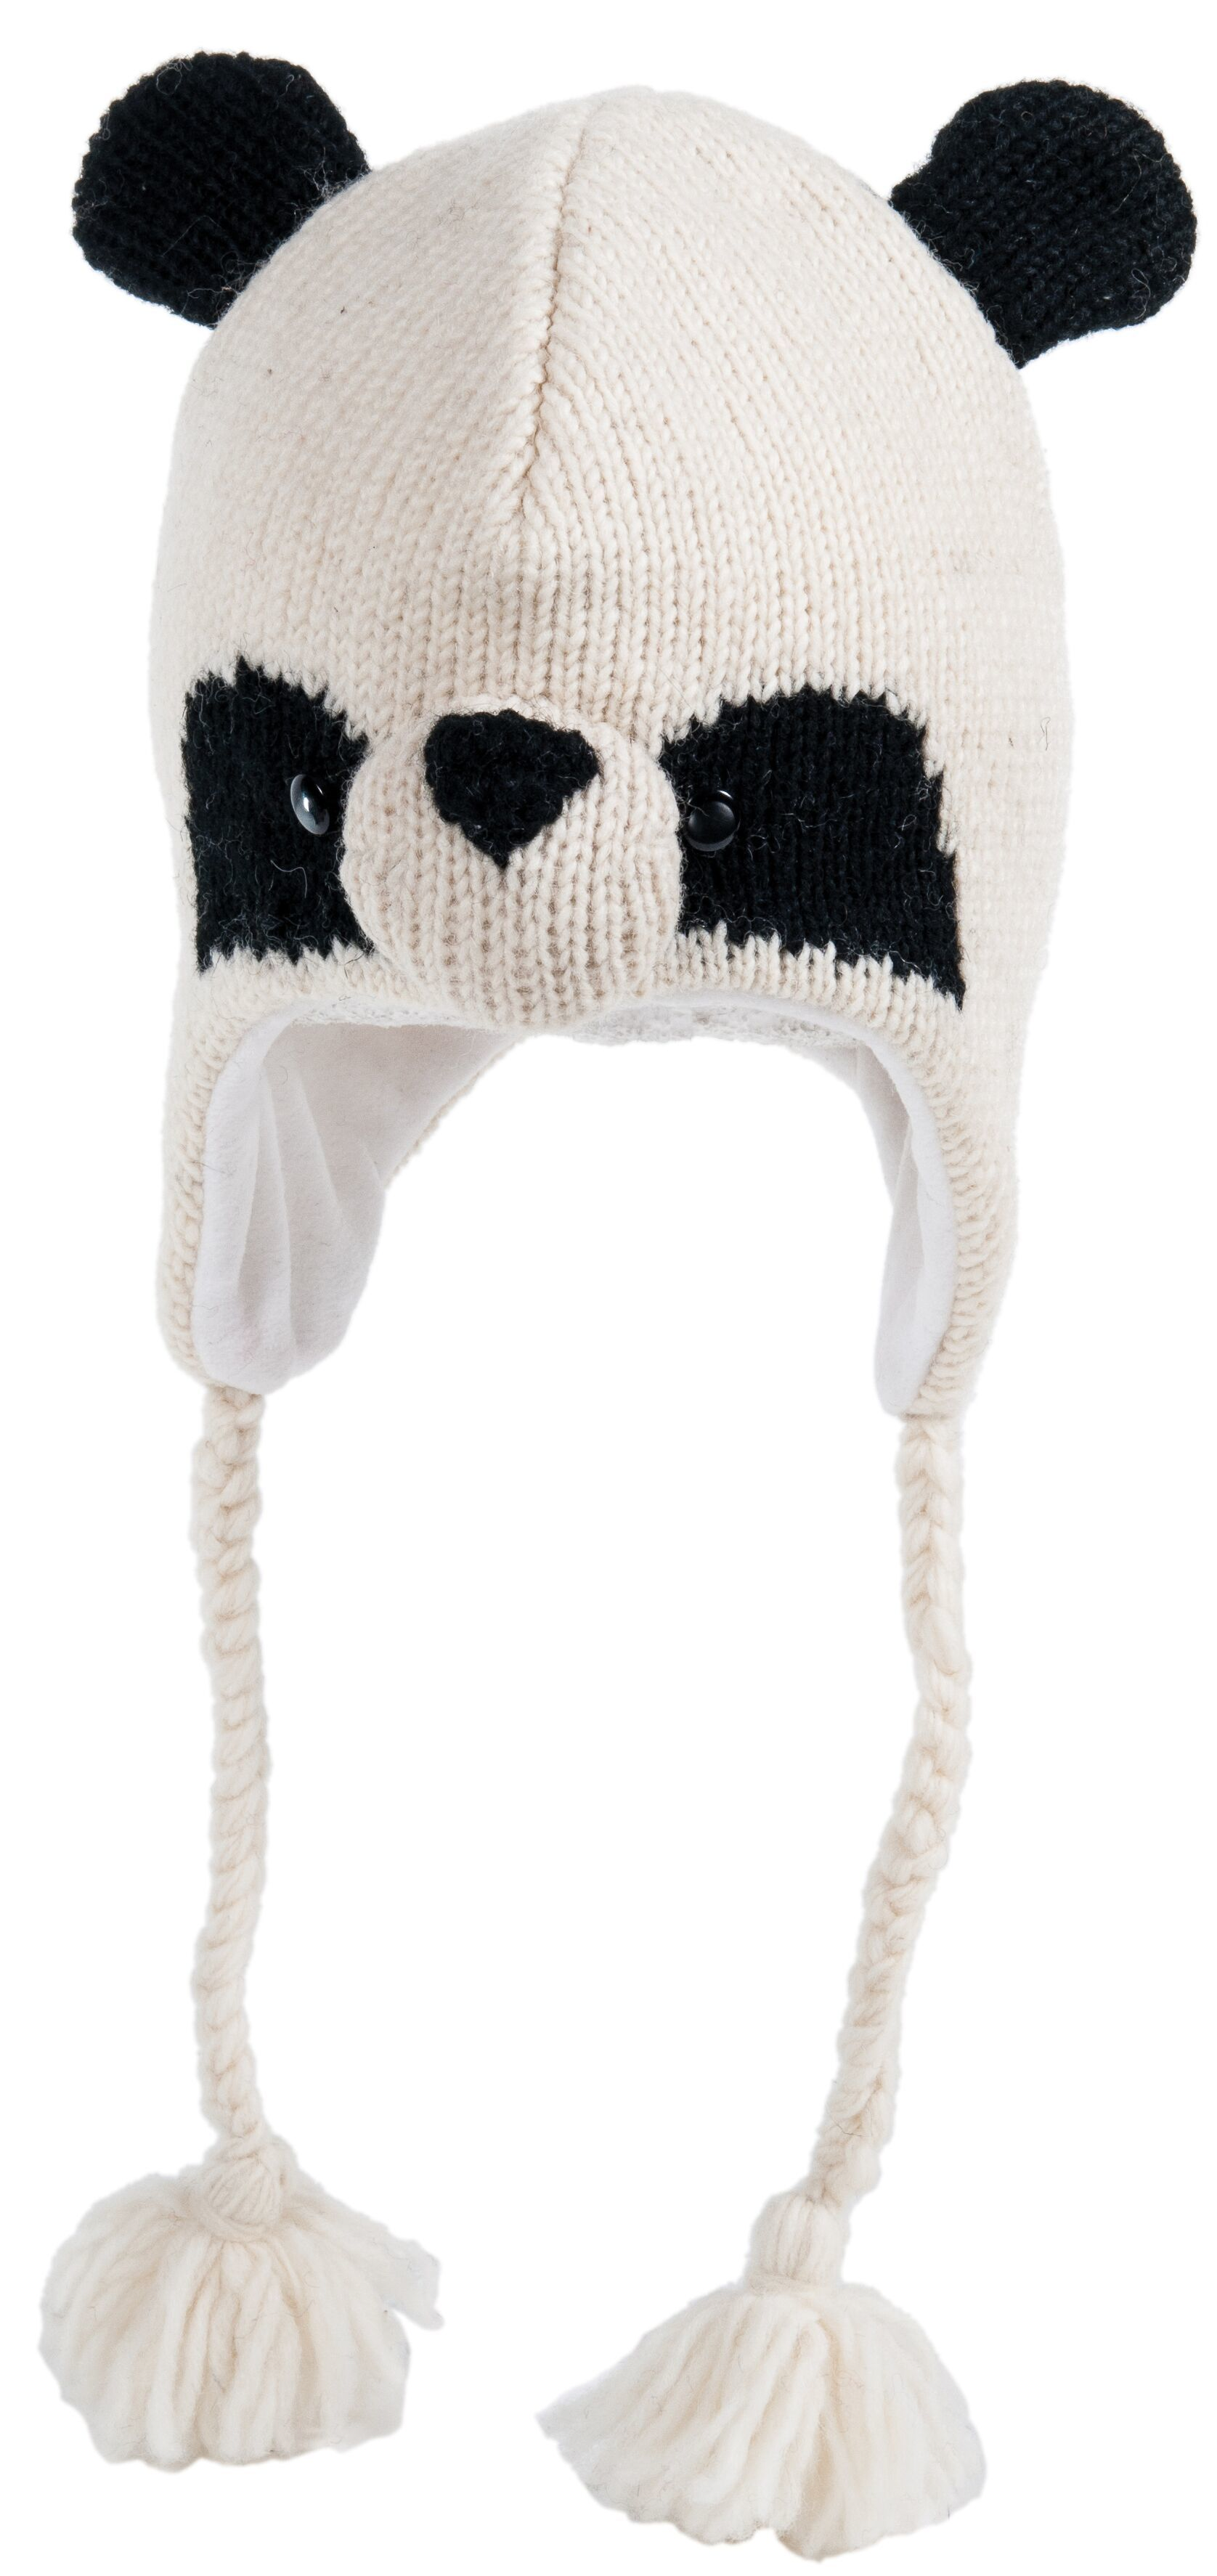 cute panda knitted hat